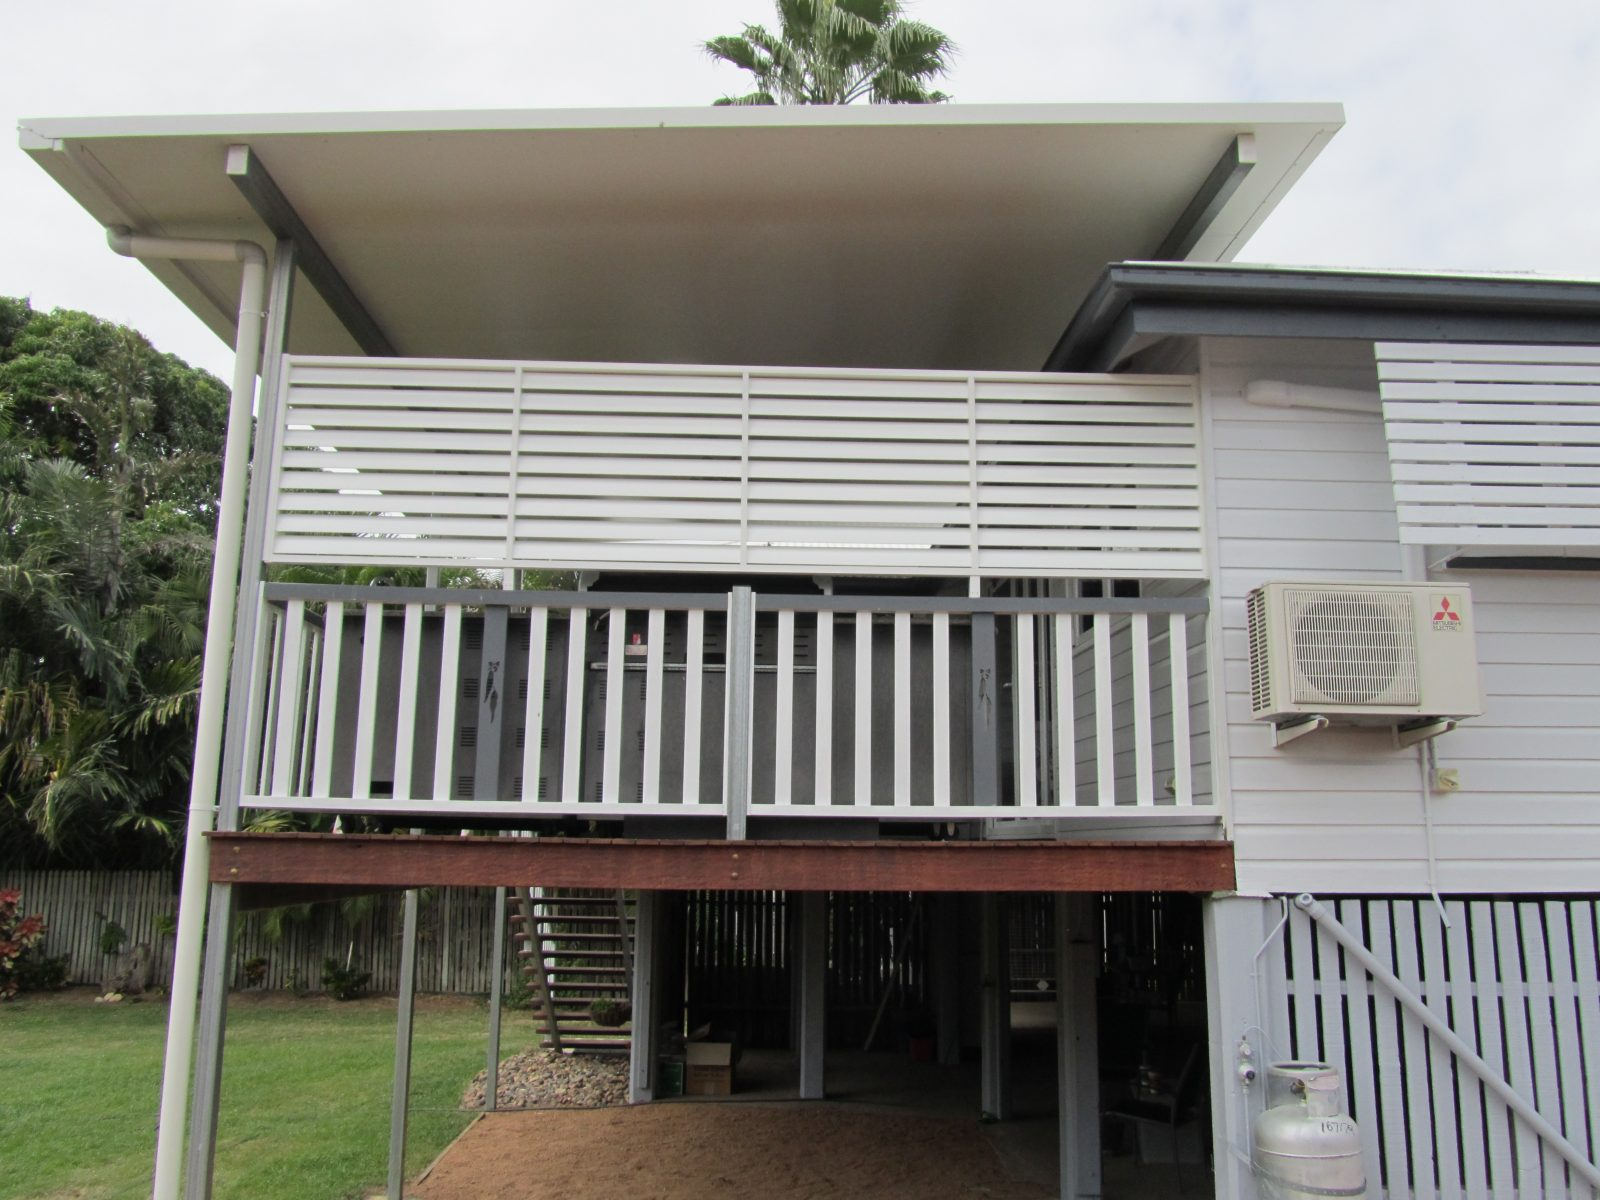 Aluminium Fixed Aerofoil Shutters Screens Blinds Awnings